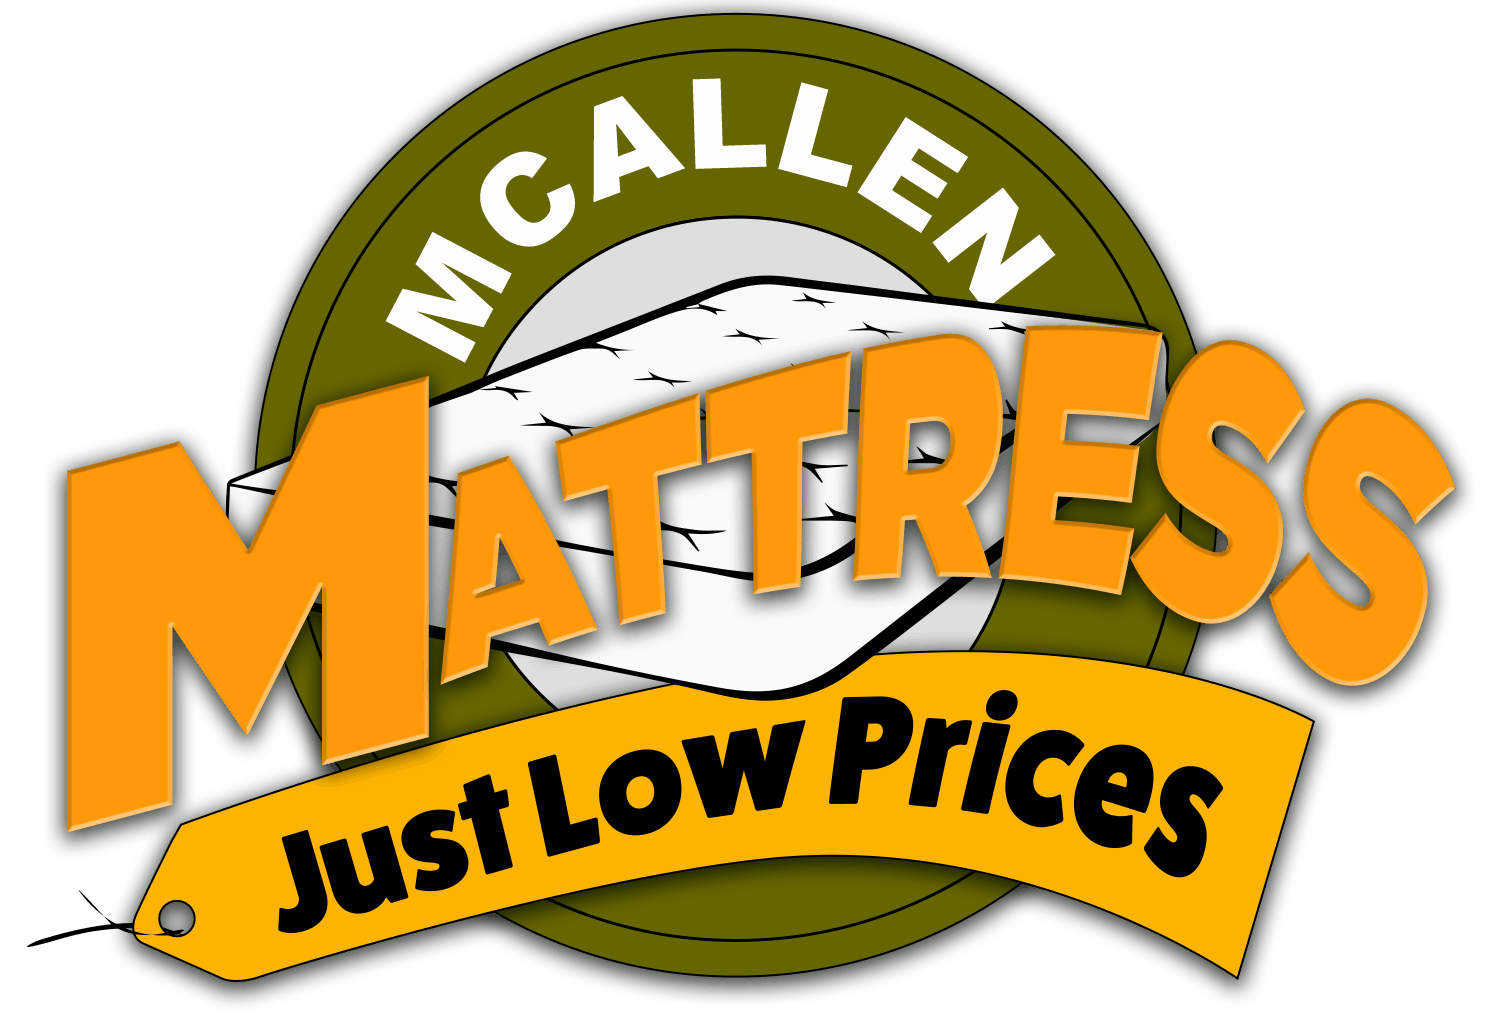 McAllen Furniture | Just Low Prices!